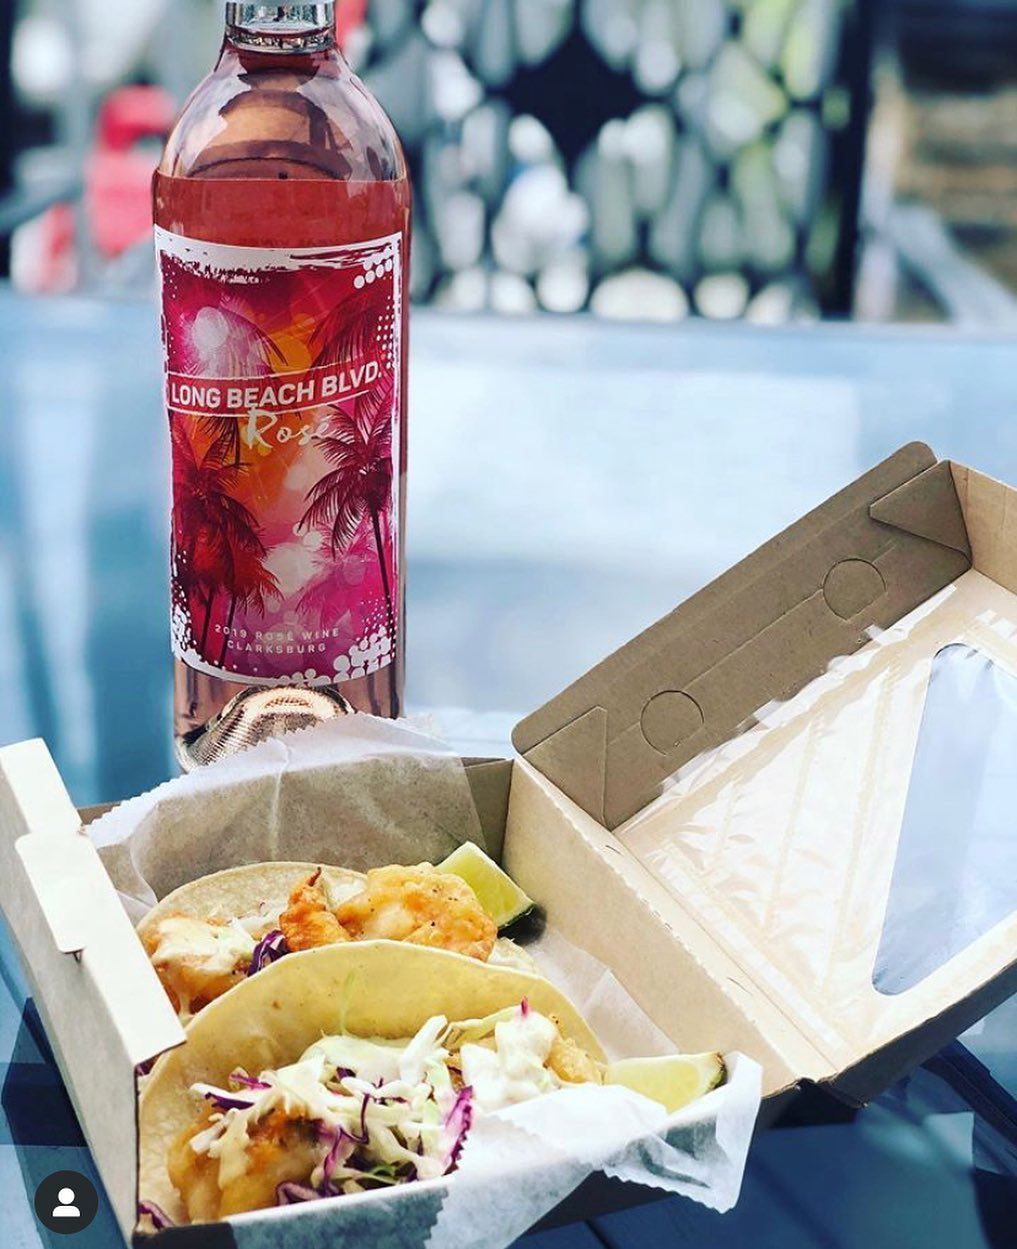 LBI Long Beach Blvd wines pair great with tacos!           …